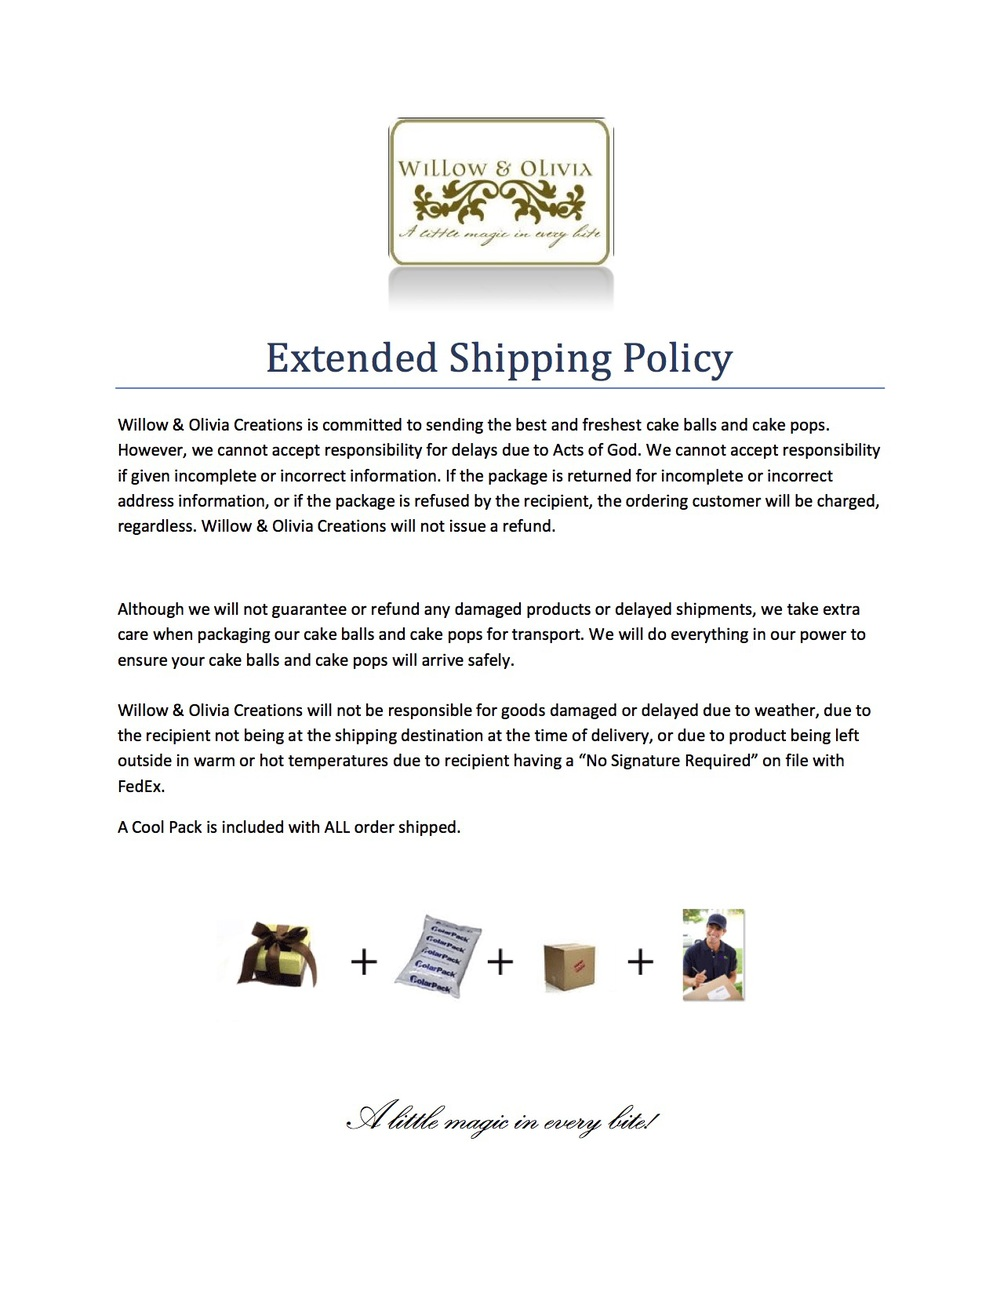 Extended Shipping Info